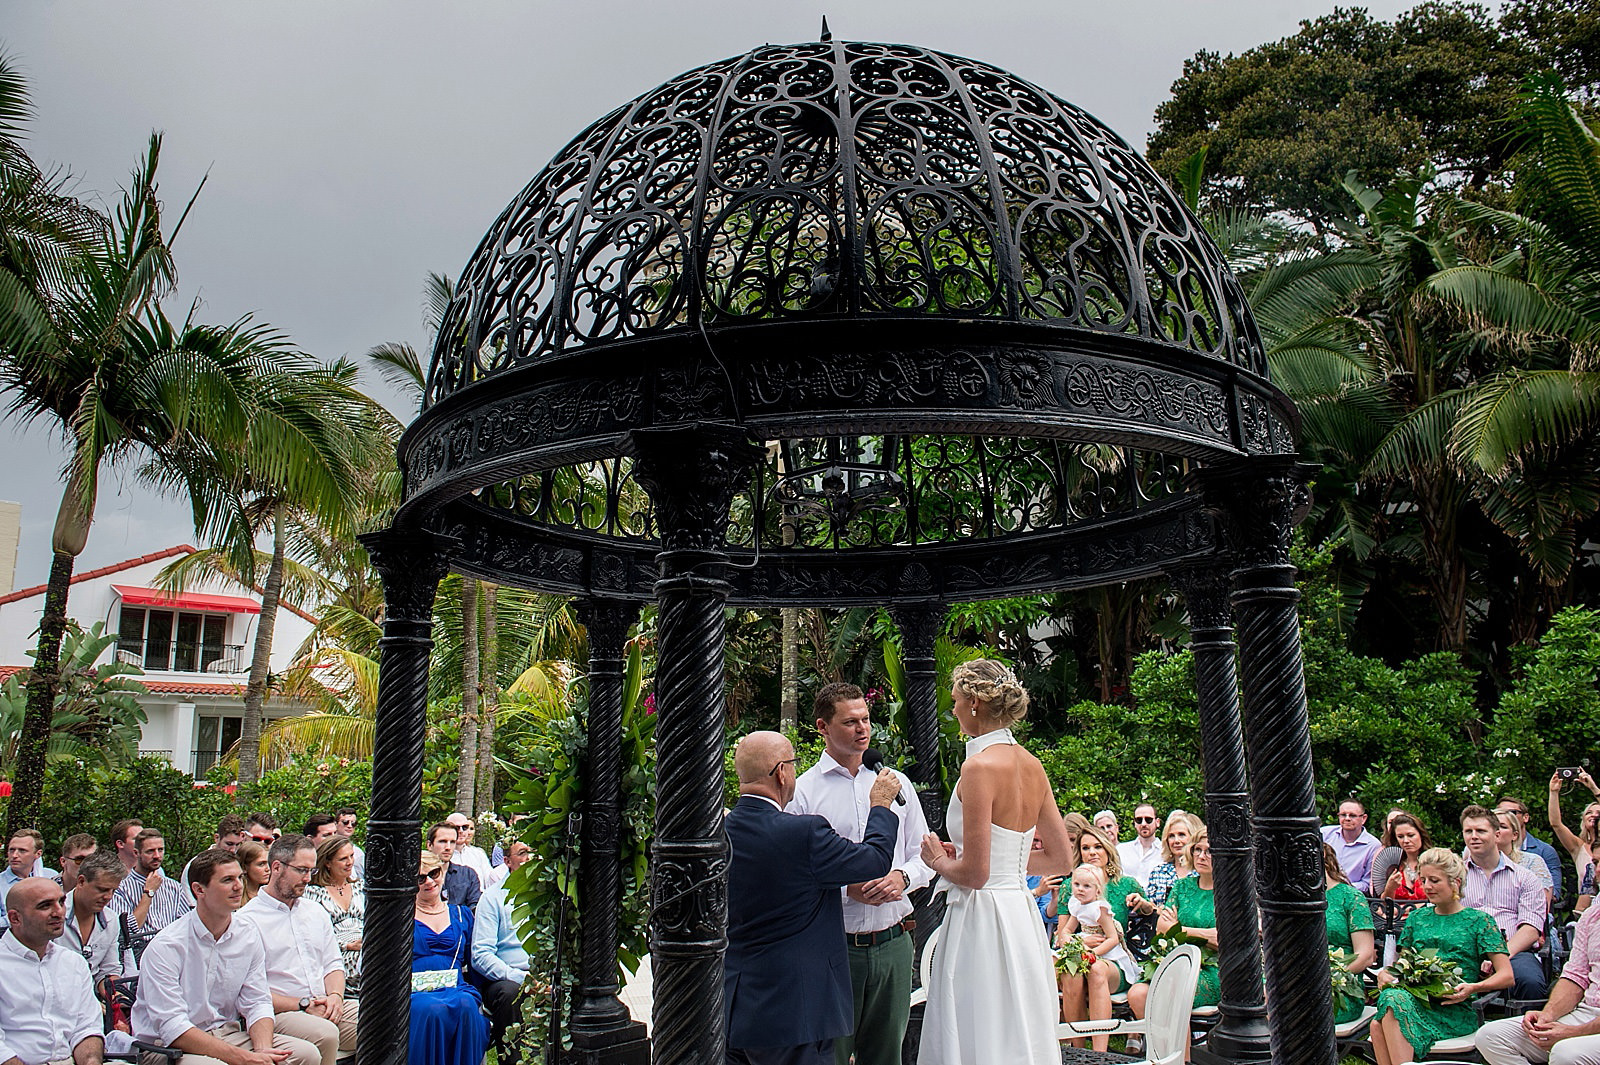 Destination wedding at the Oyster Box Hotel photographed by Jacki Bruniquel